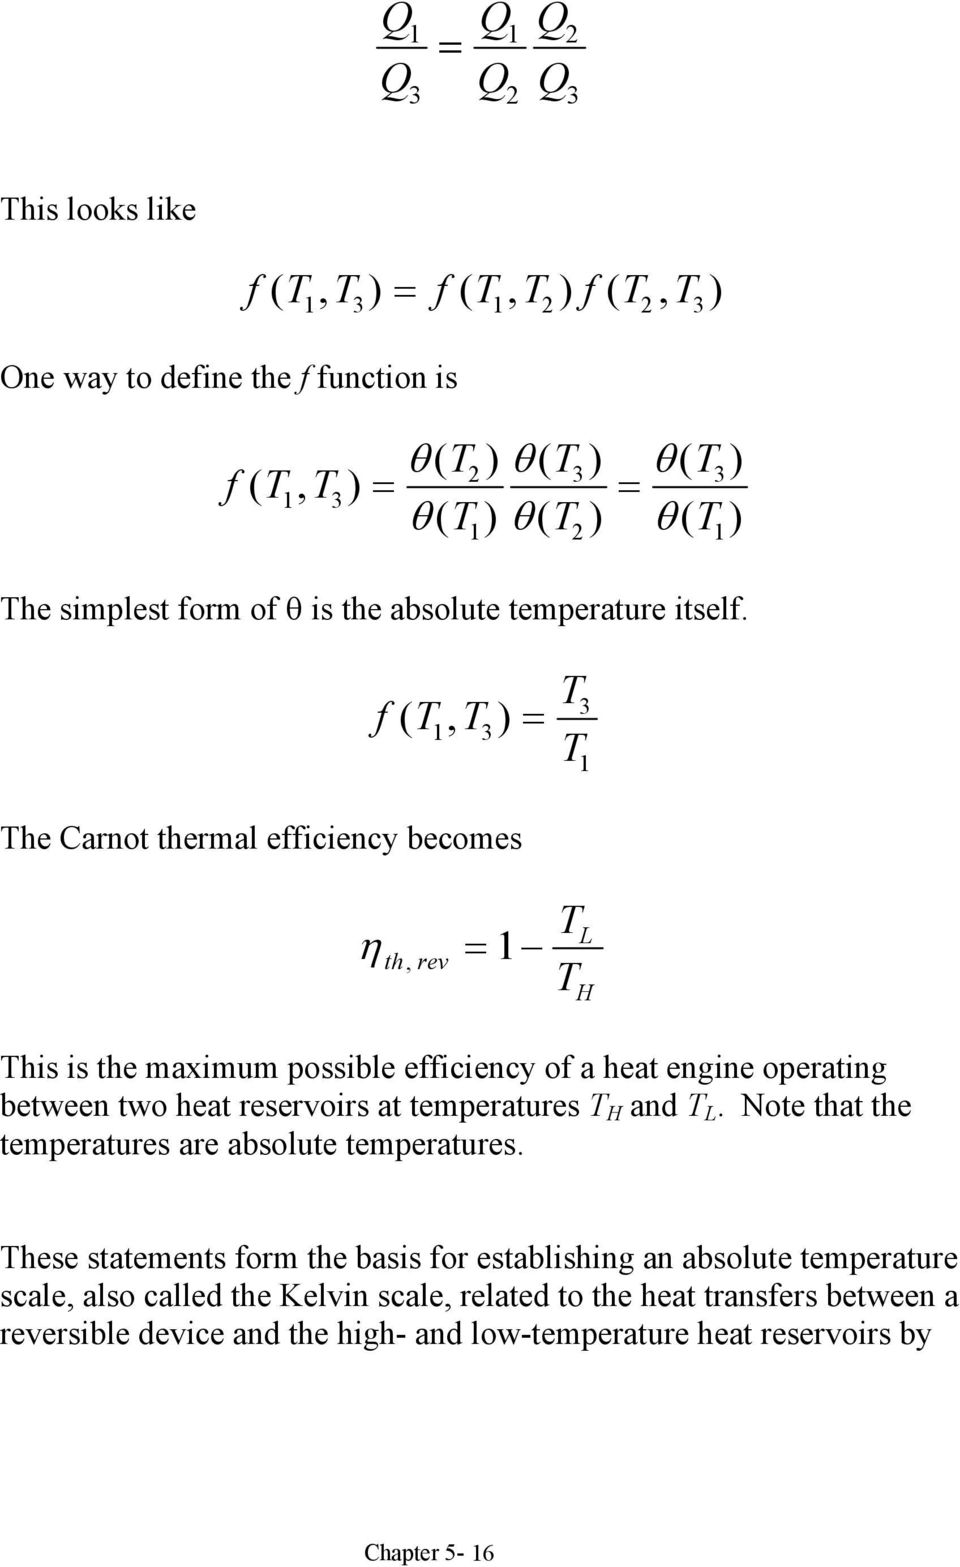 f (, ) 1 3 he Carnot thermal efficiency becomes 3 1 η th rev, 1 his is the maximum possible efficiency of a heat engine operating between two heat reservoirs at